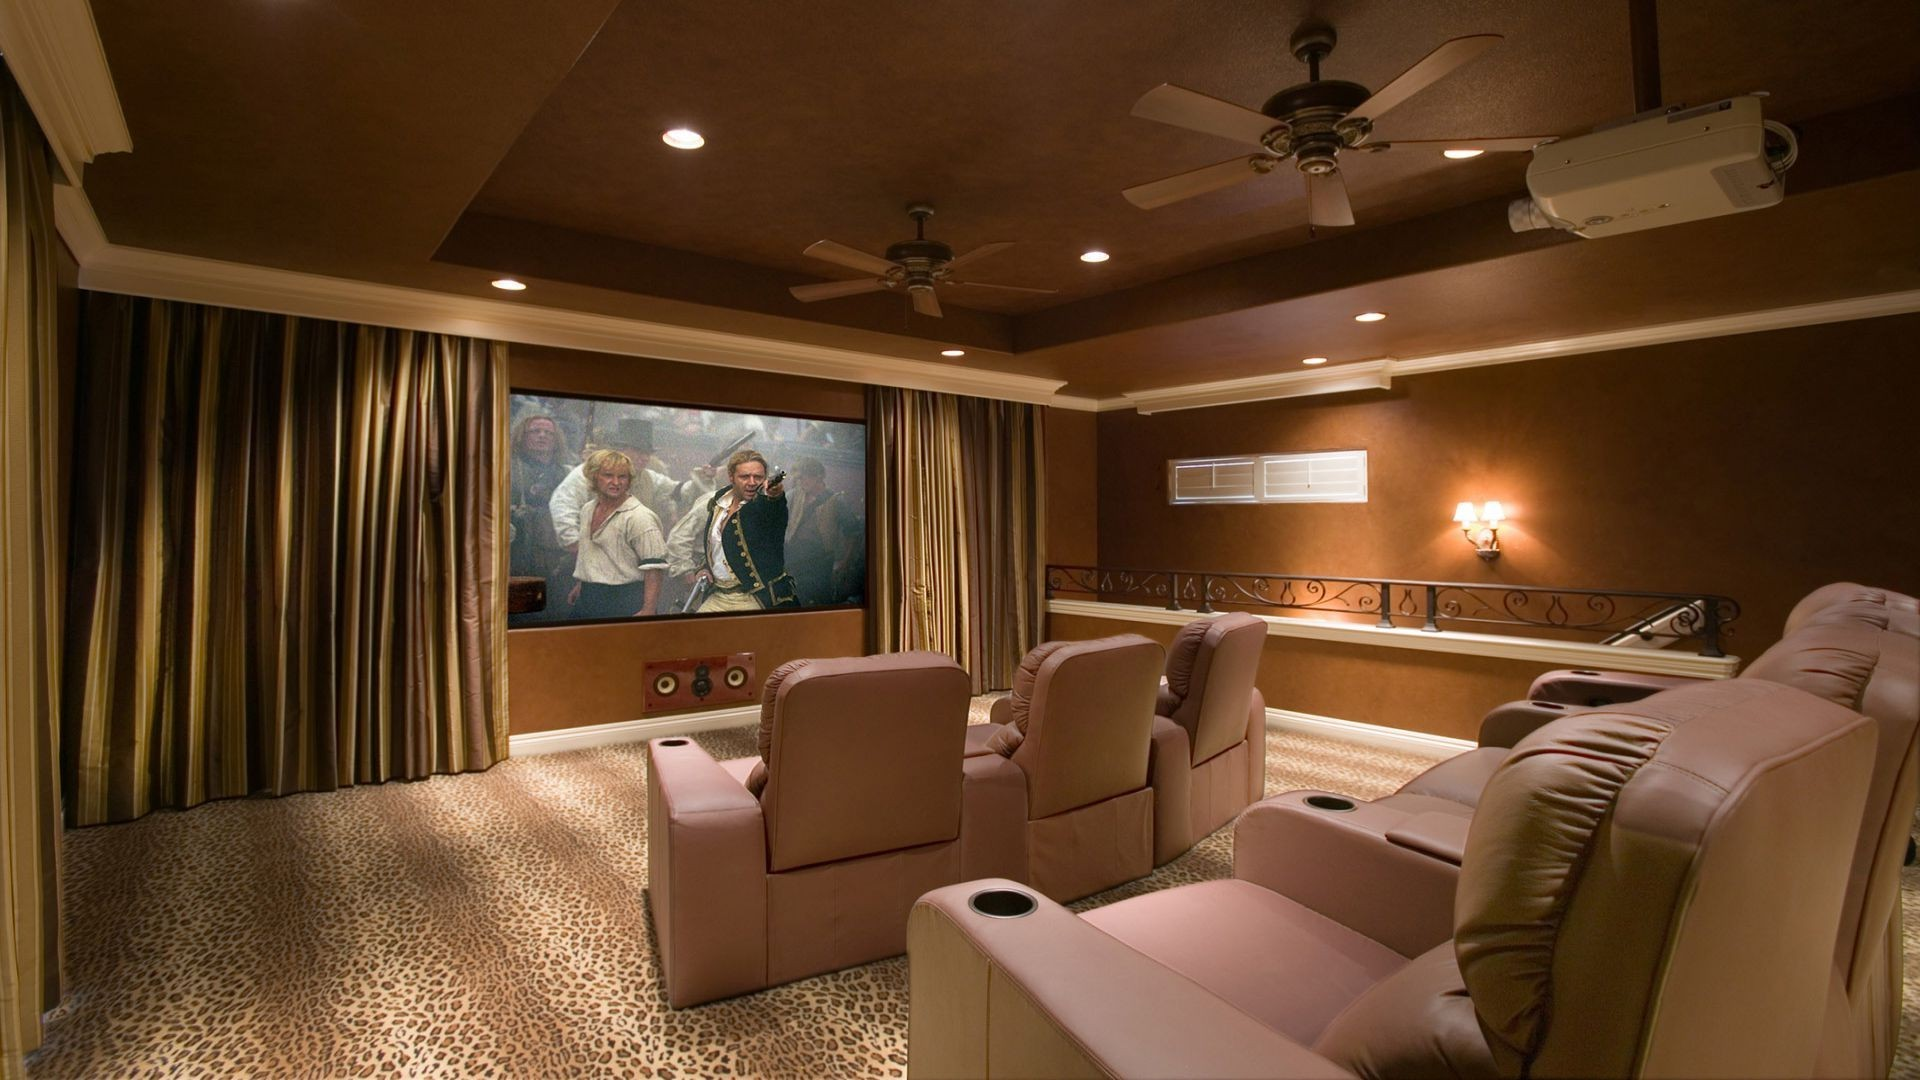 Home theatre wallpaper wallpapersafari for Wallpaper home theater